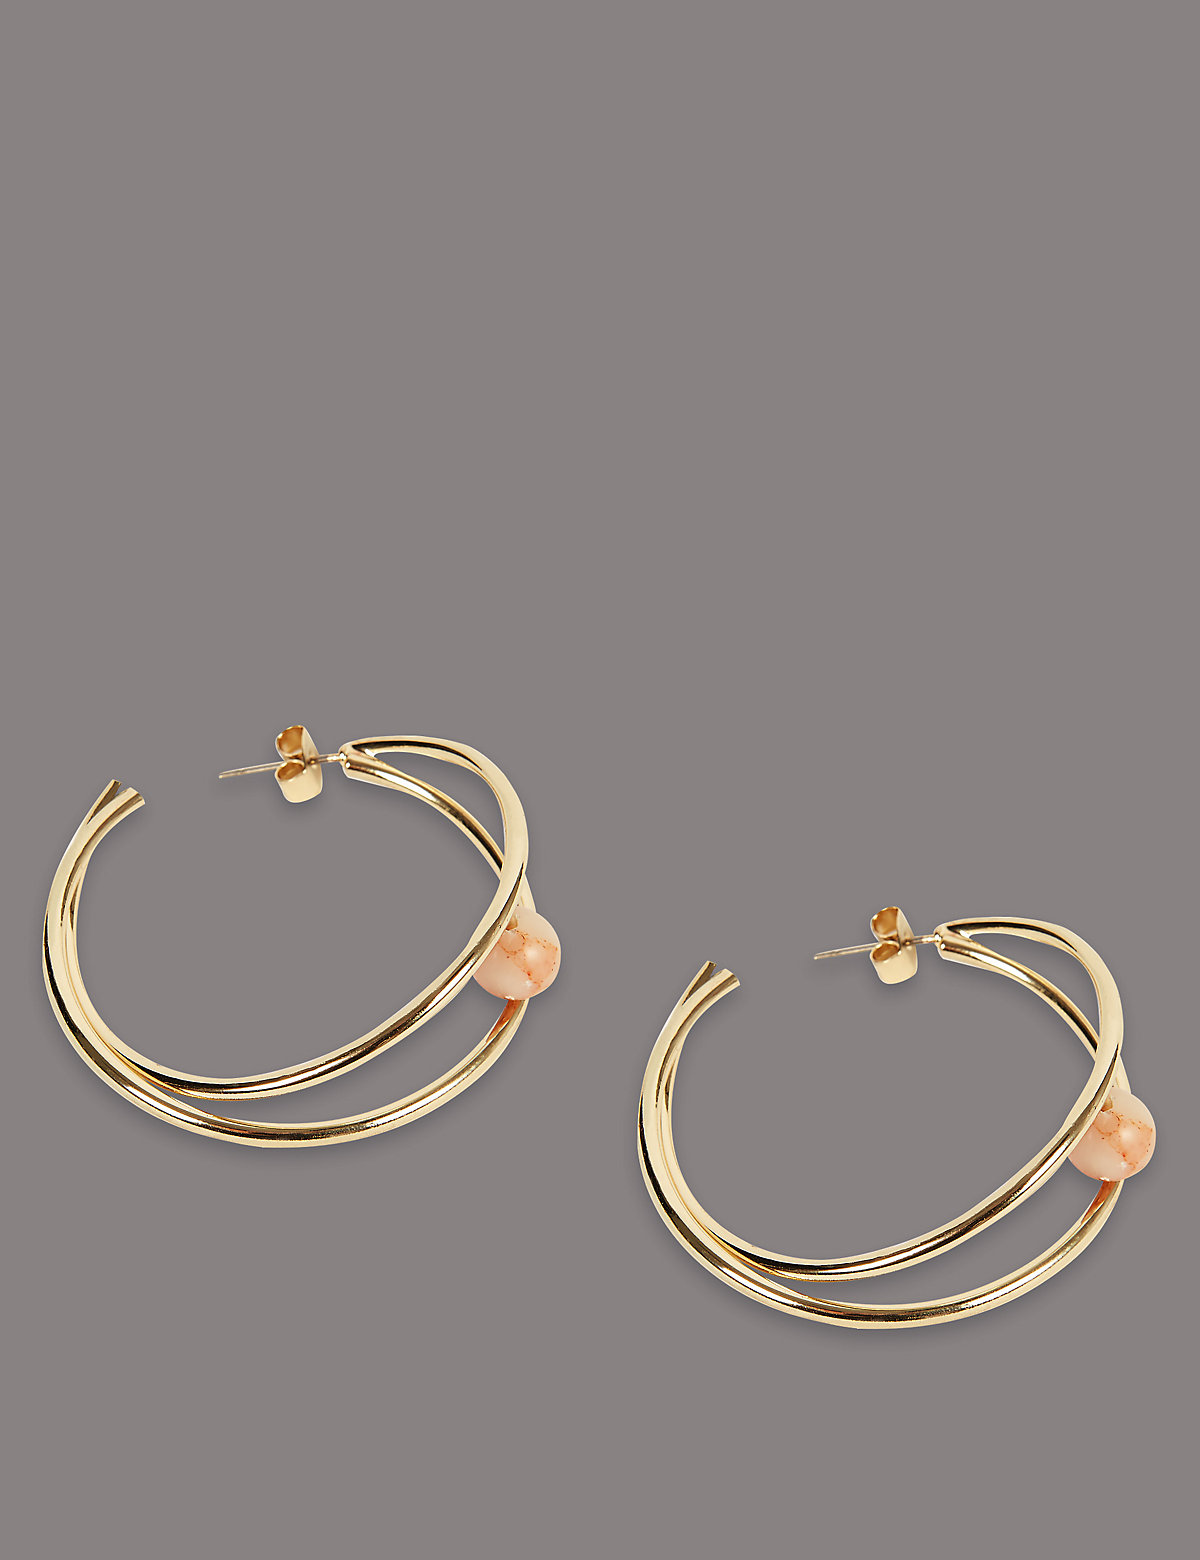 Autograph Deco Ball Hoop Earrings